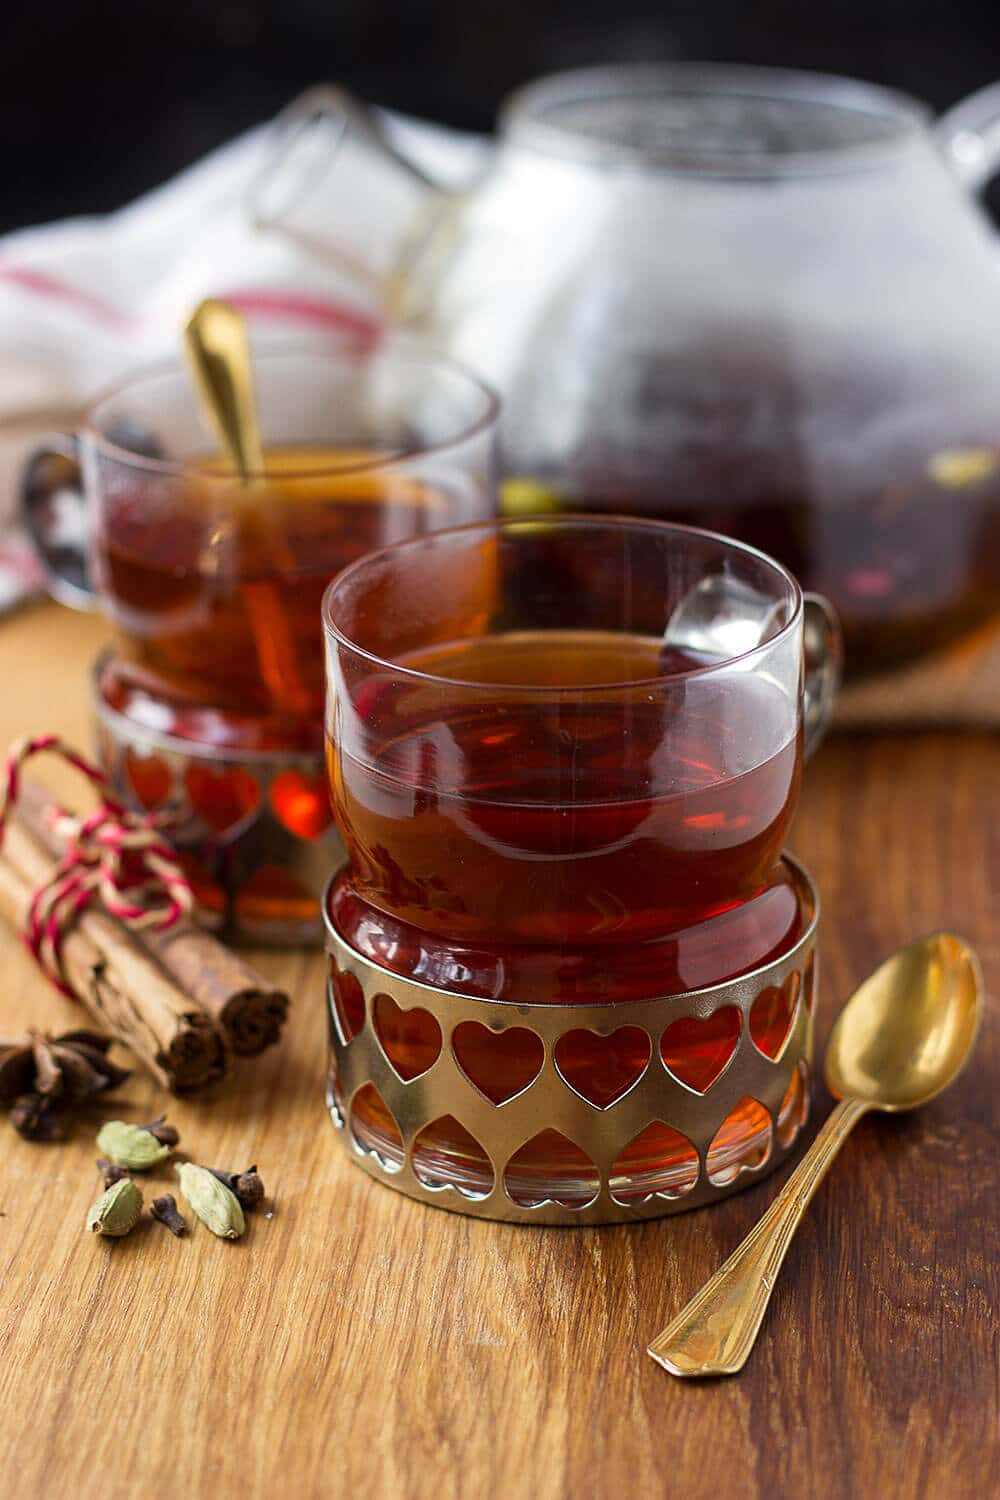 MULLED WINE TEA || 5 variations for the good ol' winter favorite - the mulled wine! Click through for my picks of the comforting winter drink